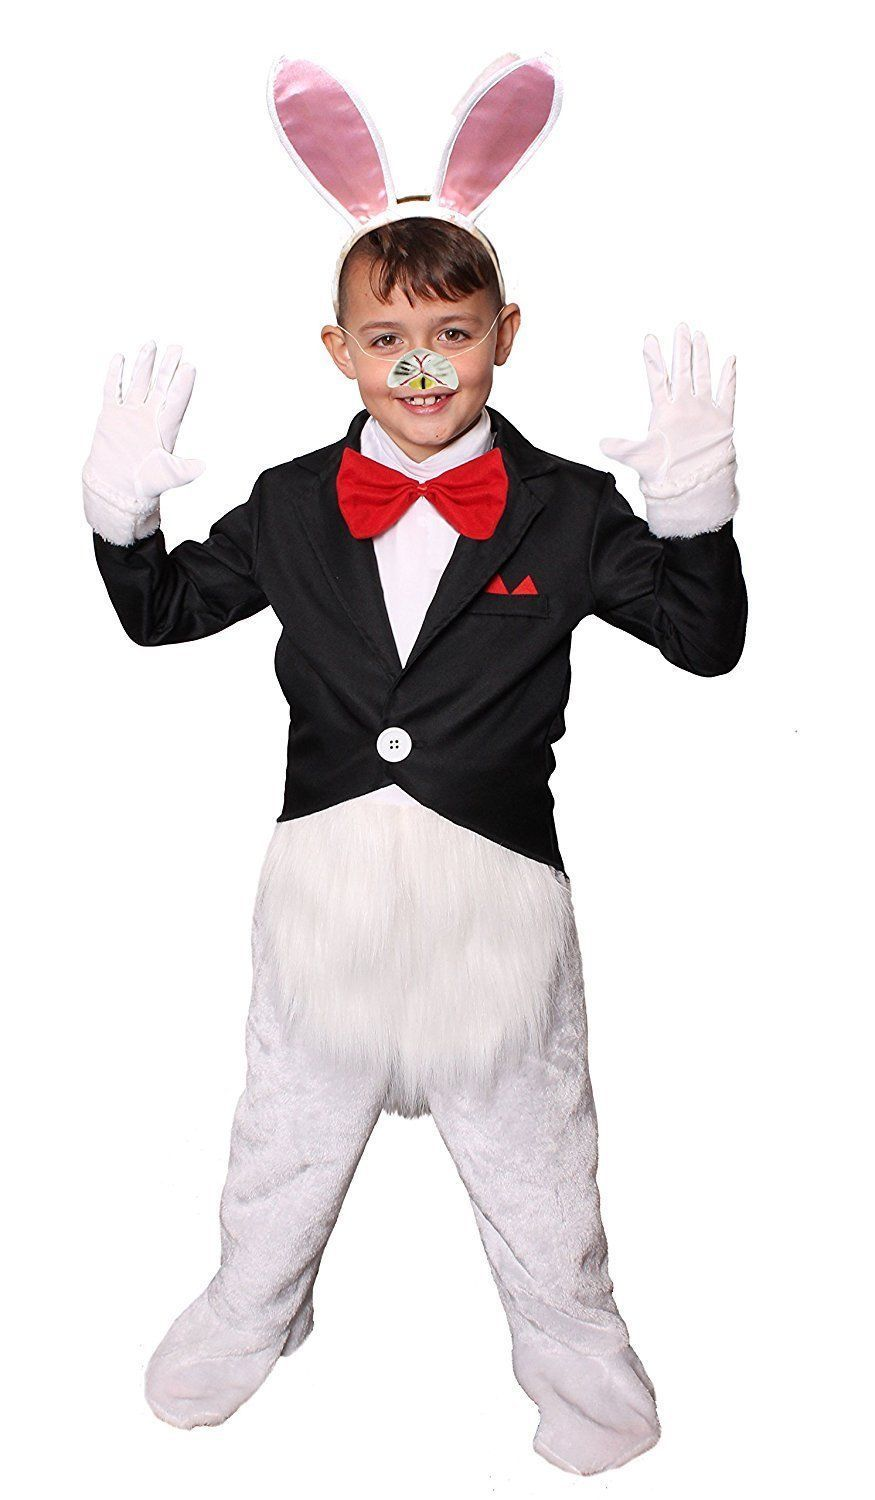 CHILDS KIDS EASTER RABBIT BUNNY COSTUME SCHOOL BOOK WEEK HELLOWEEN FANCY DRESS CUTE MOVIE CHARACTER CARTOON Alice in Wonderland